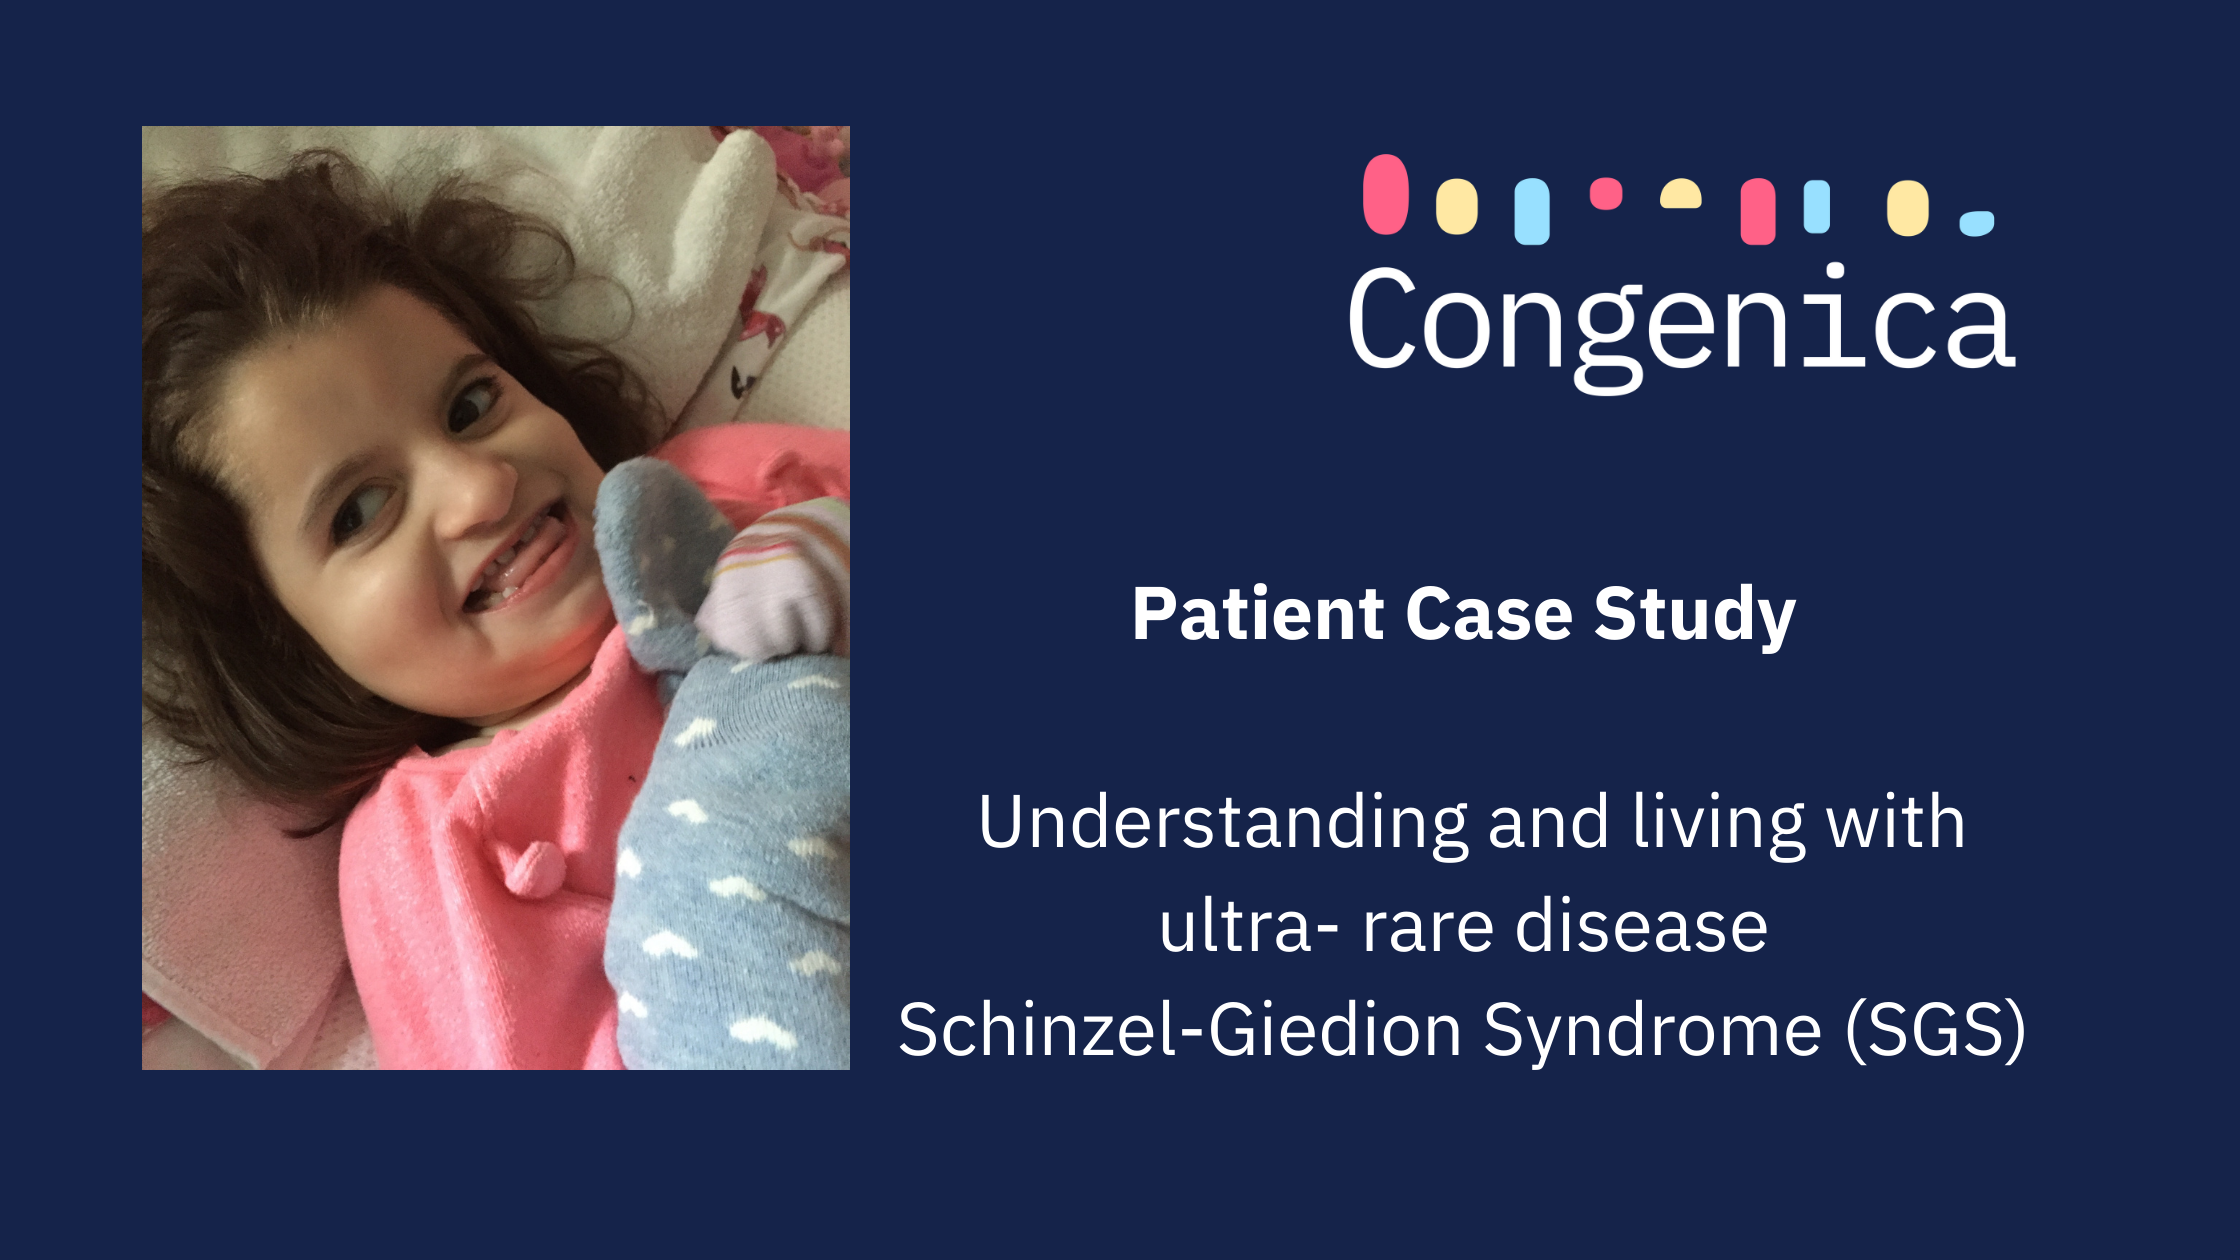 How Schinzel-Giedion Syndrome (SGS) has changed our lives